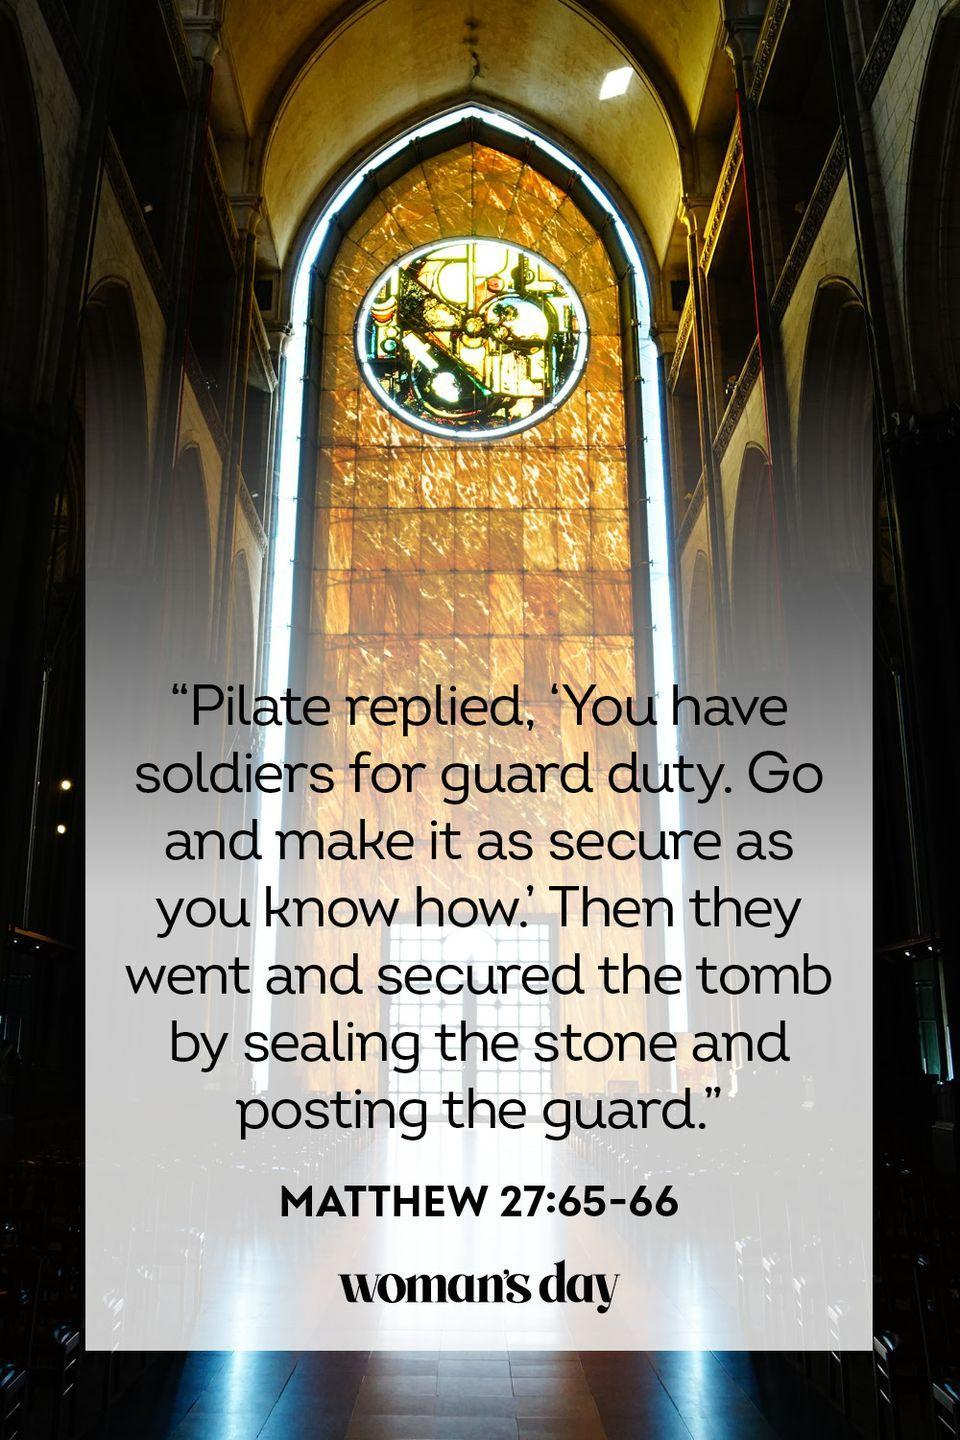 "<p>""Pilate replied, 'You have soldiers for guard duty. Go and make it as secure as you know how.' Then they went and secured the tomb by sealing the stone and posting the guard."" — Matthew 27:65-66</p>"